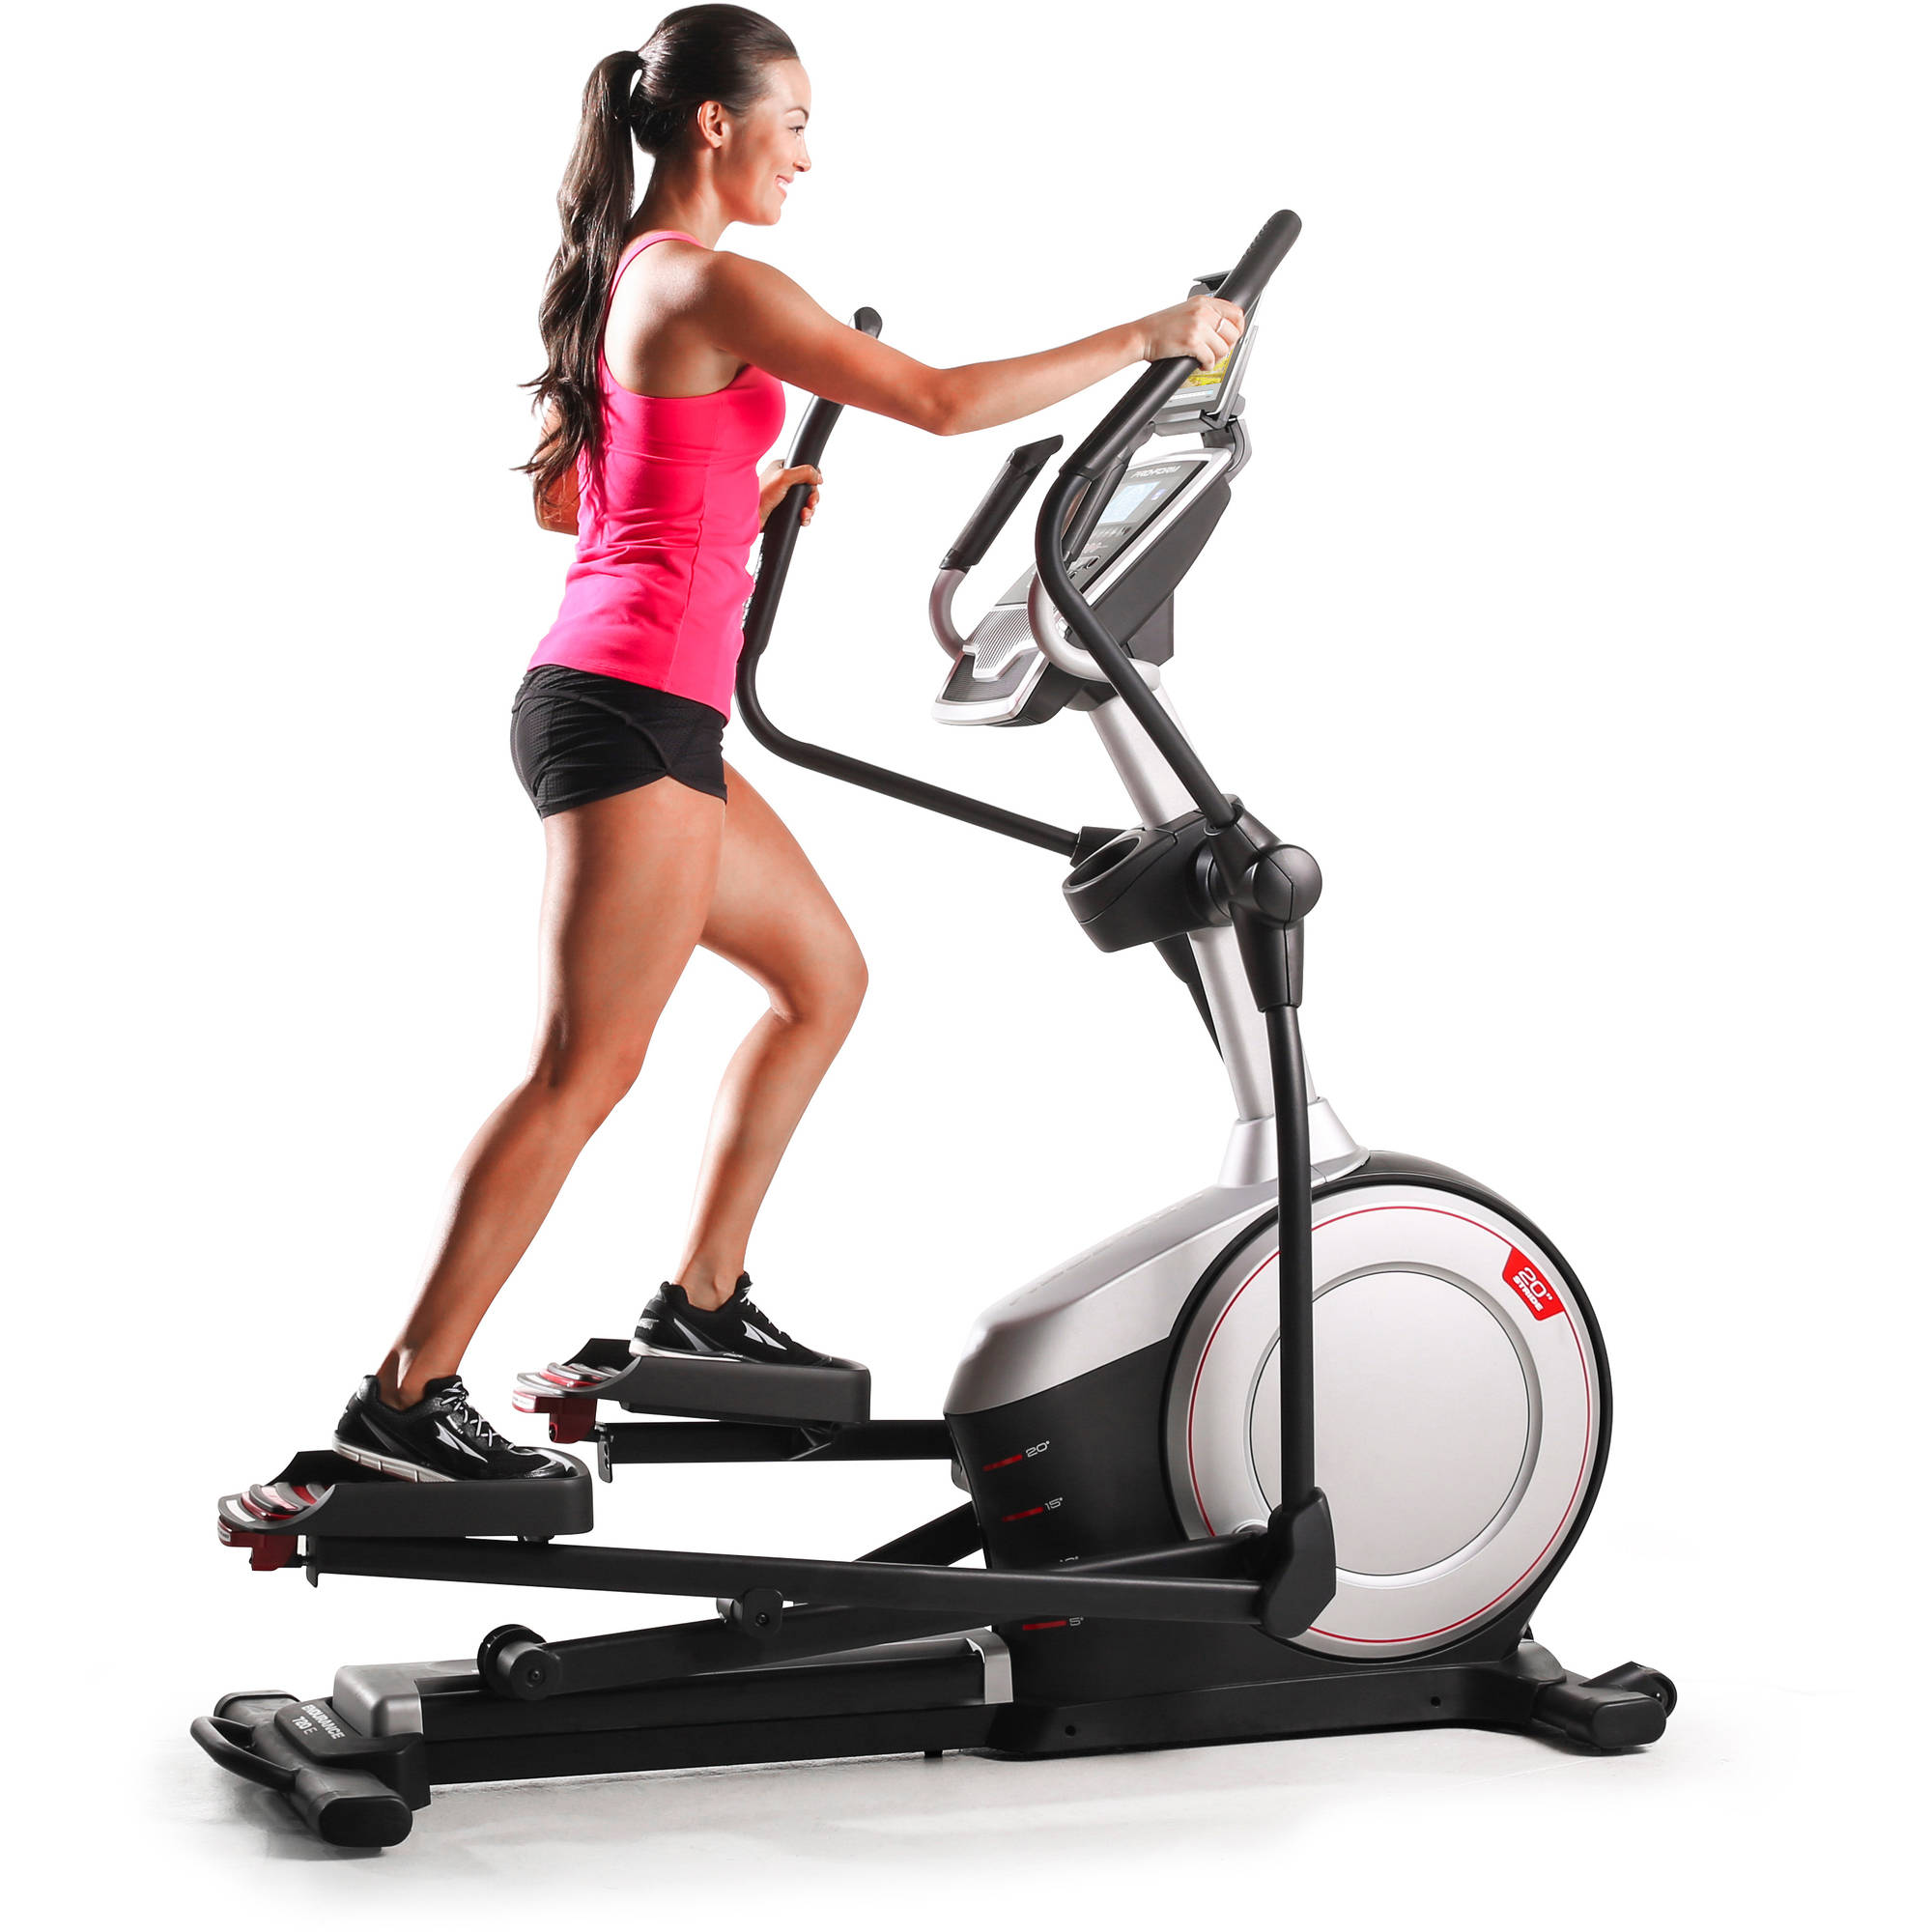 ProForm Endurance 720 E Elliptical, New Model